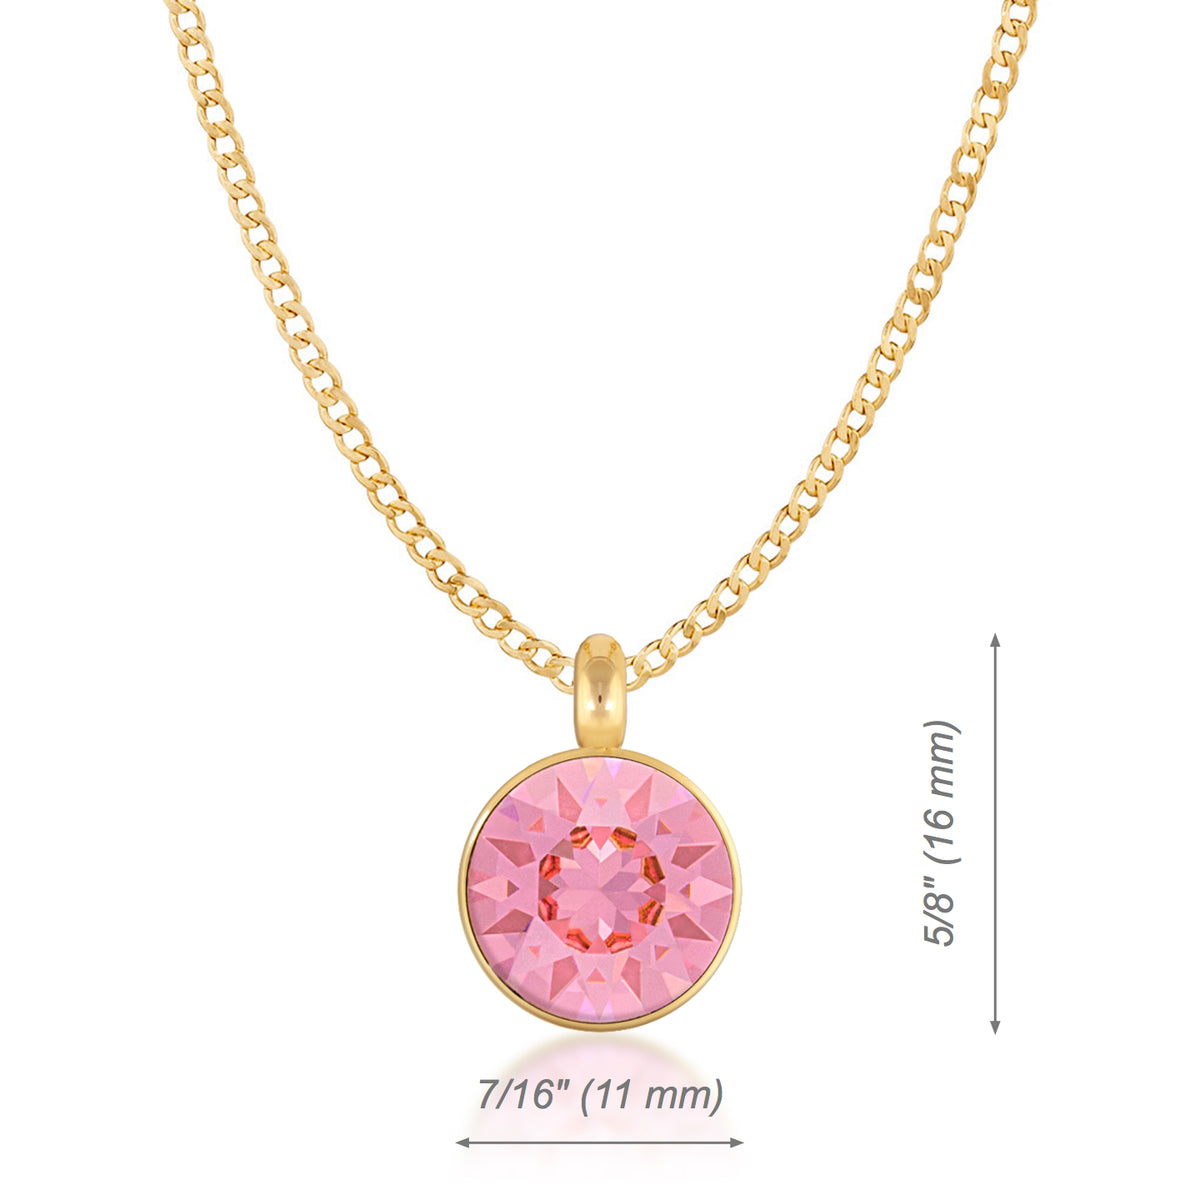 Bella Pendant Necklace with Pink Light Rose Round Crystals from Swarovski Gold Plated - Ed Heart